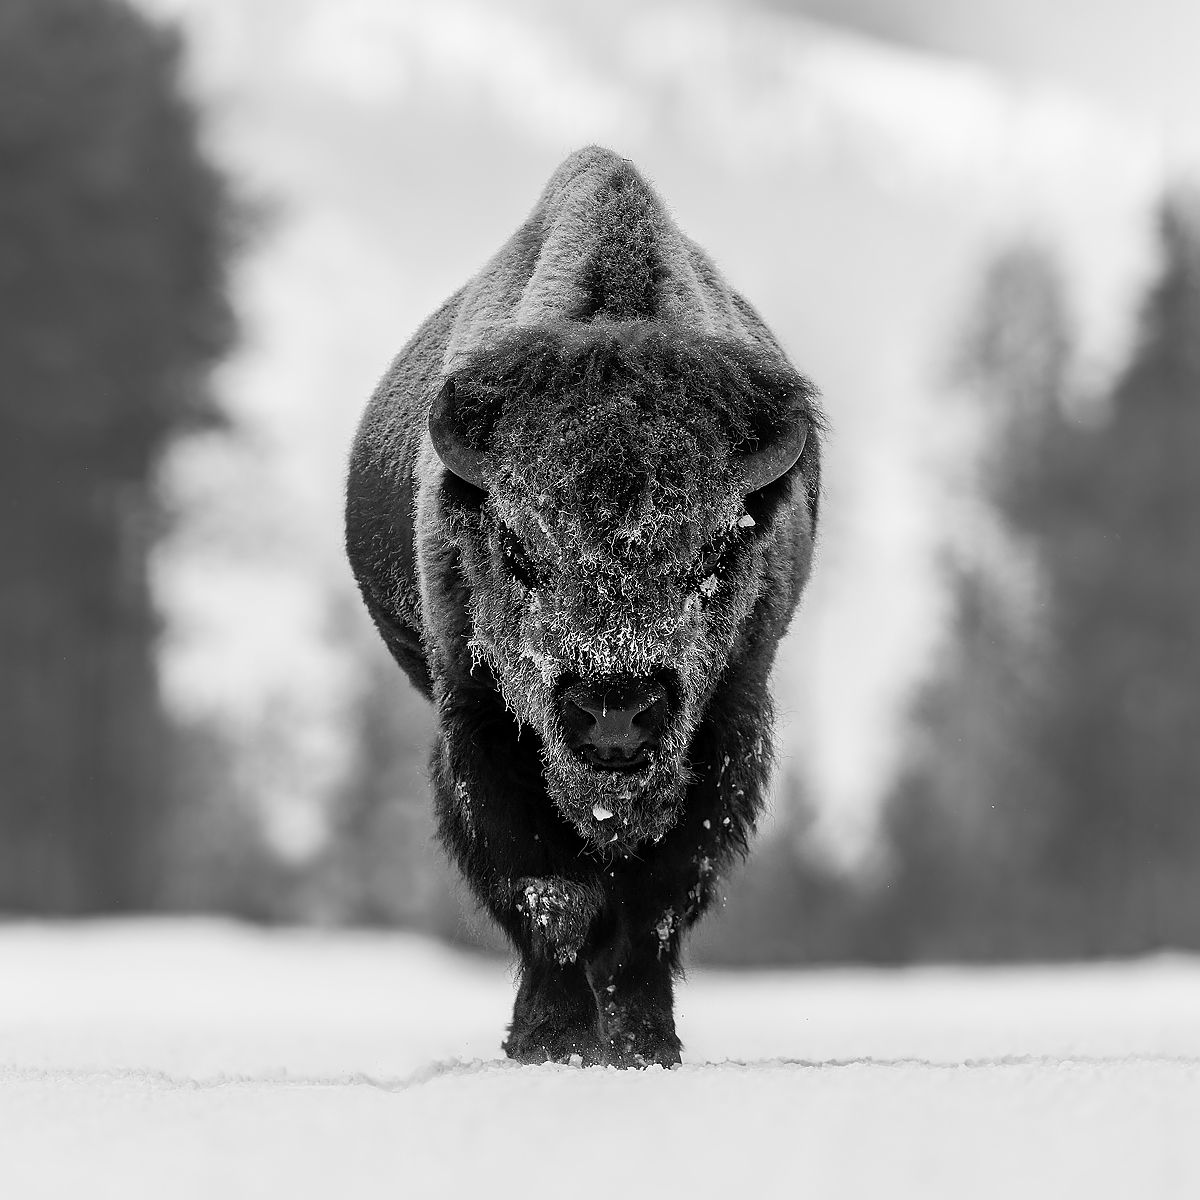 Bison-walking-head-on-in-the-snow-B&W-III_B8R6579-Yellowstone-National-Park,-WY,-USA.jpg